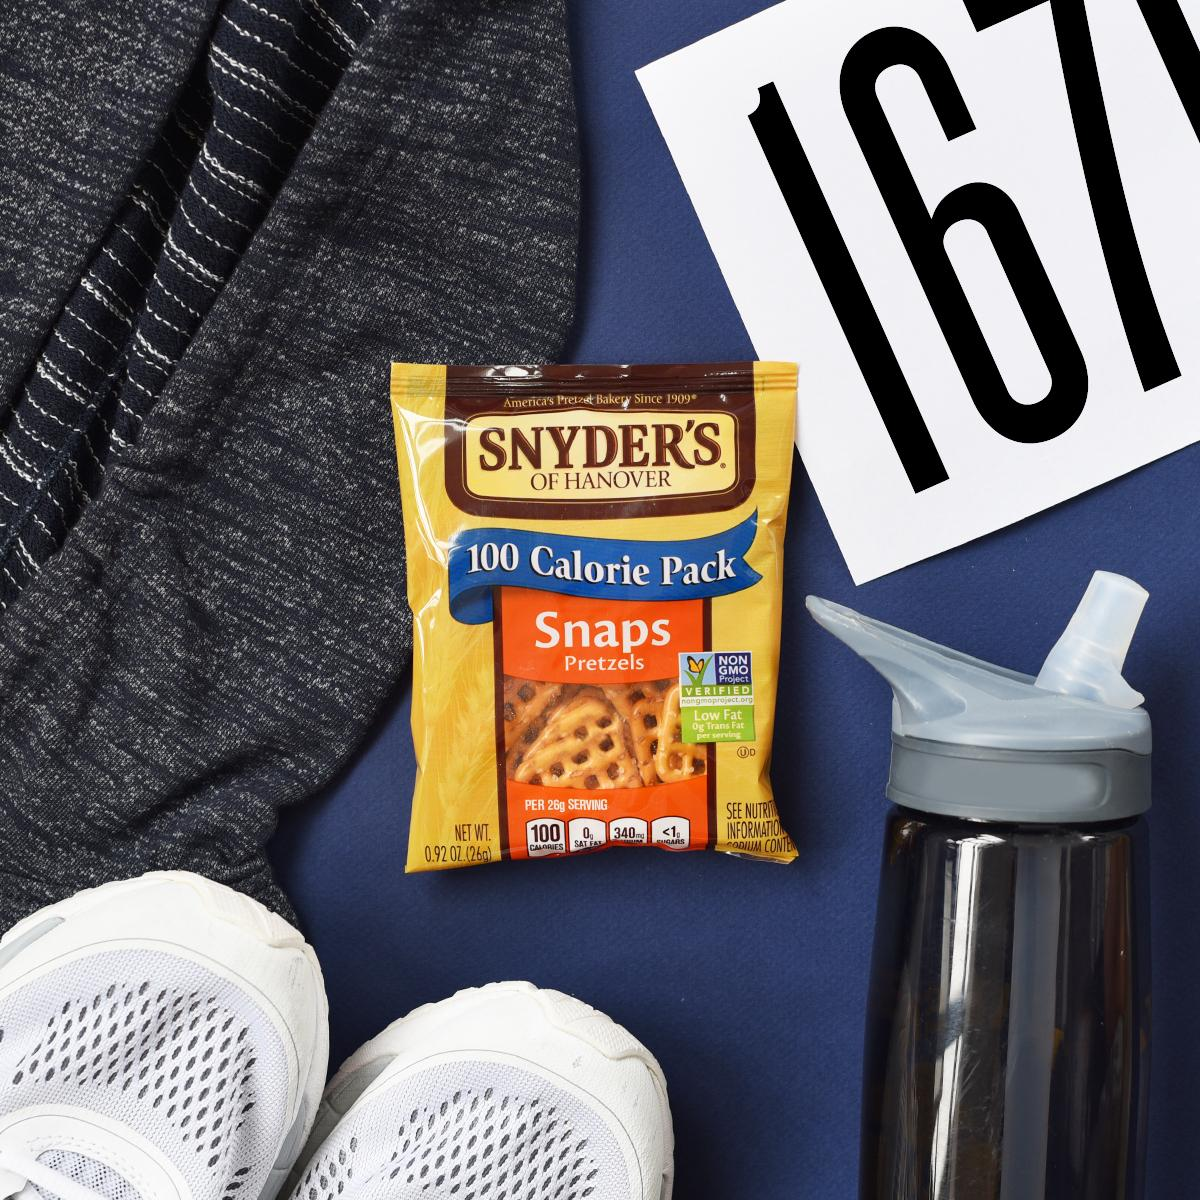 Good luck to all TCS New York City Marathon runners - @snyders will be waiting for you to refuel at the finish line!